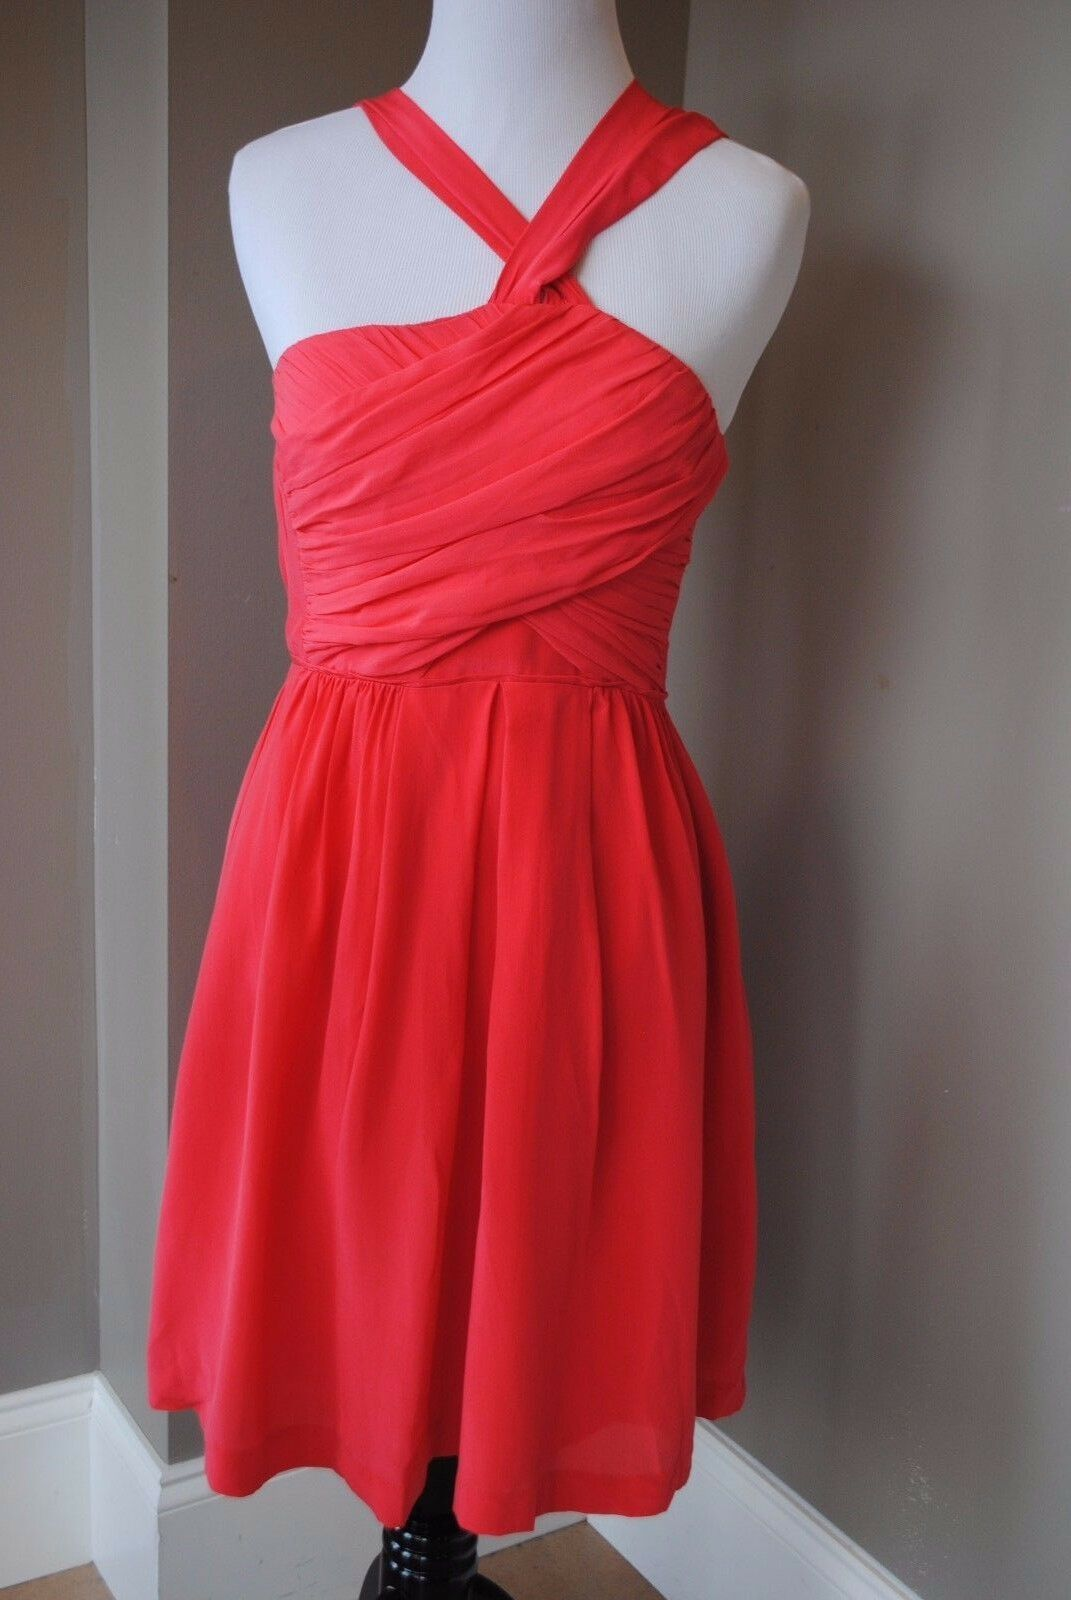 NWT Madewell Twilight Twirl Dress in Vivid Poppy rot 2 XS Extra Small 67160